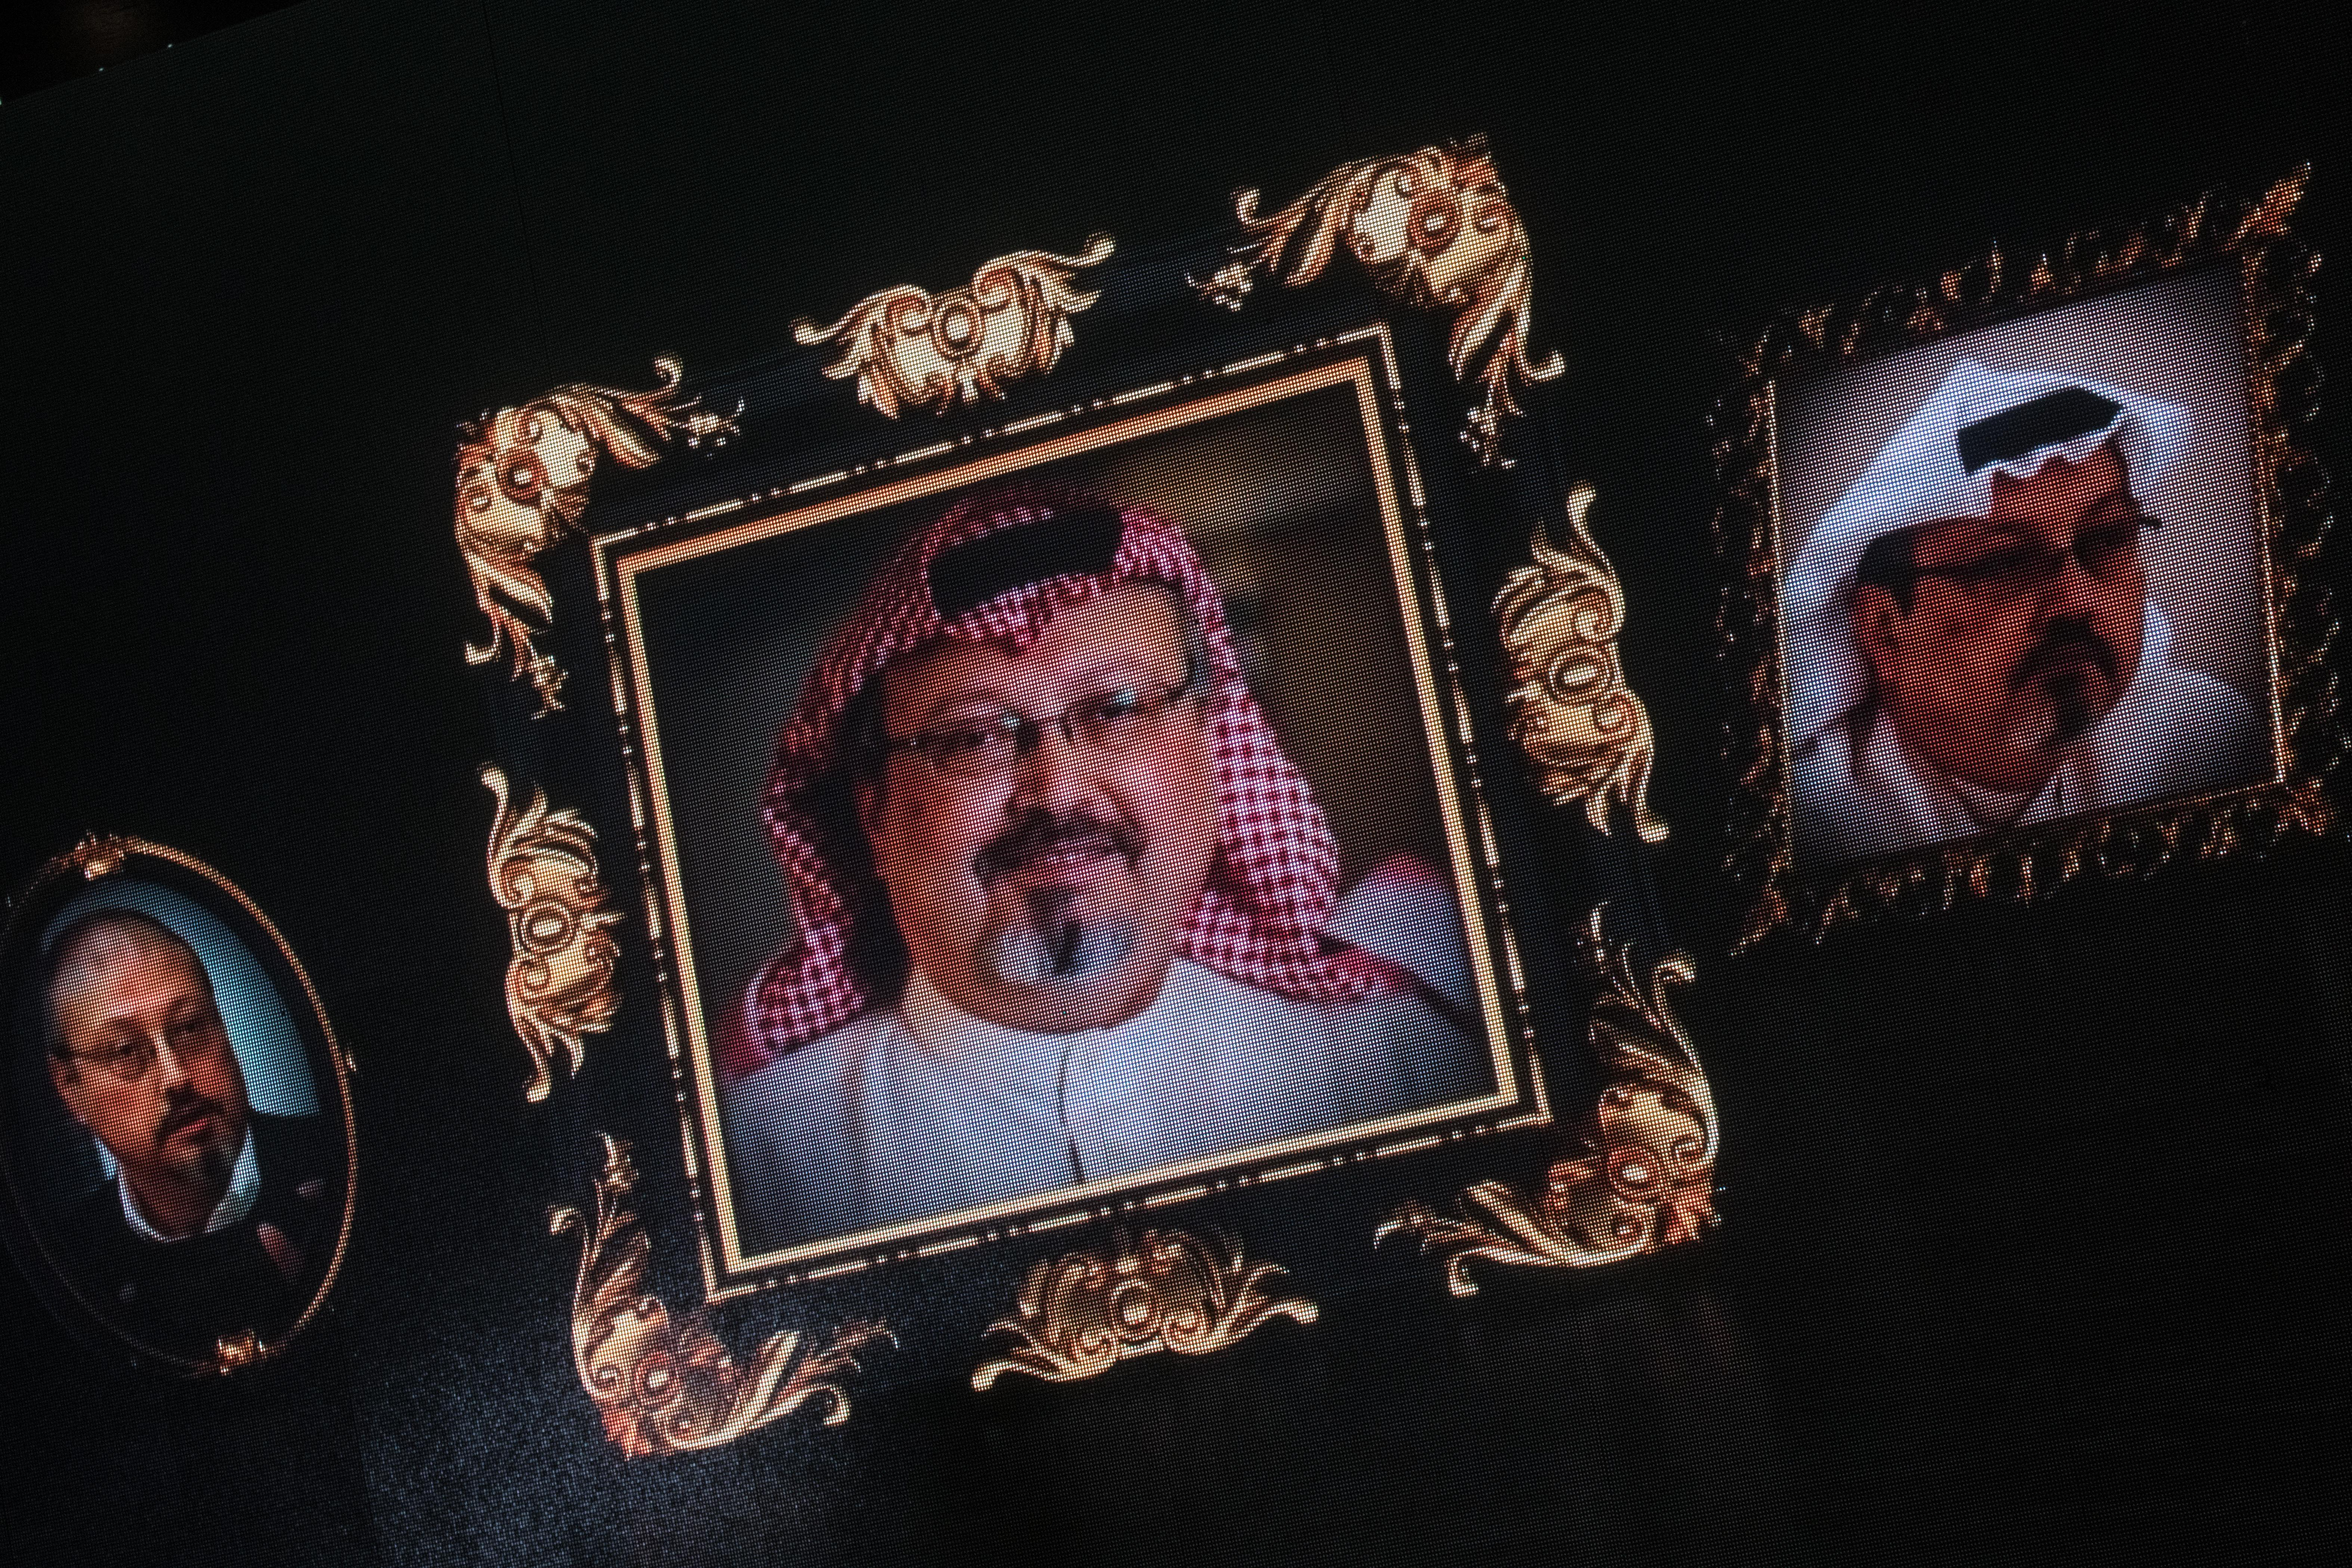 Pictures of Jamal Khashoggi projected on a screen in Turkey